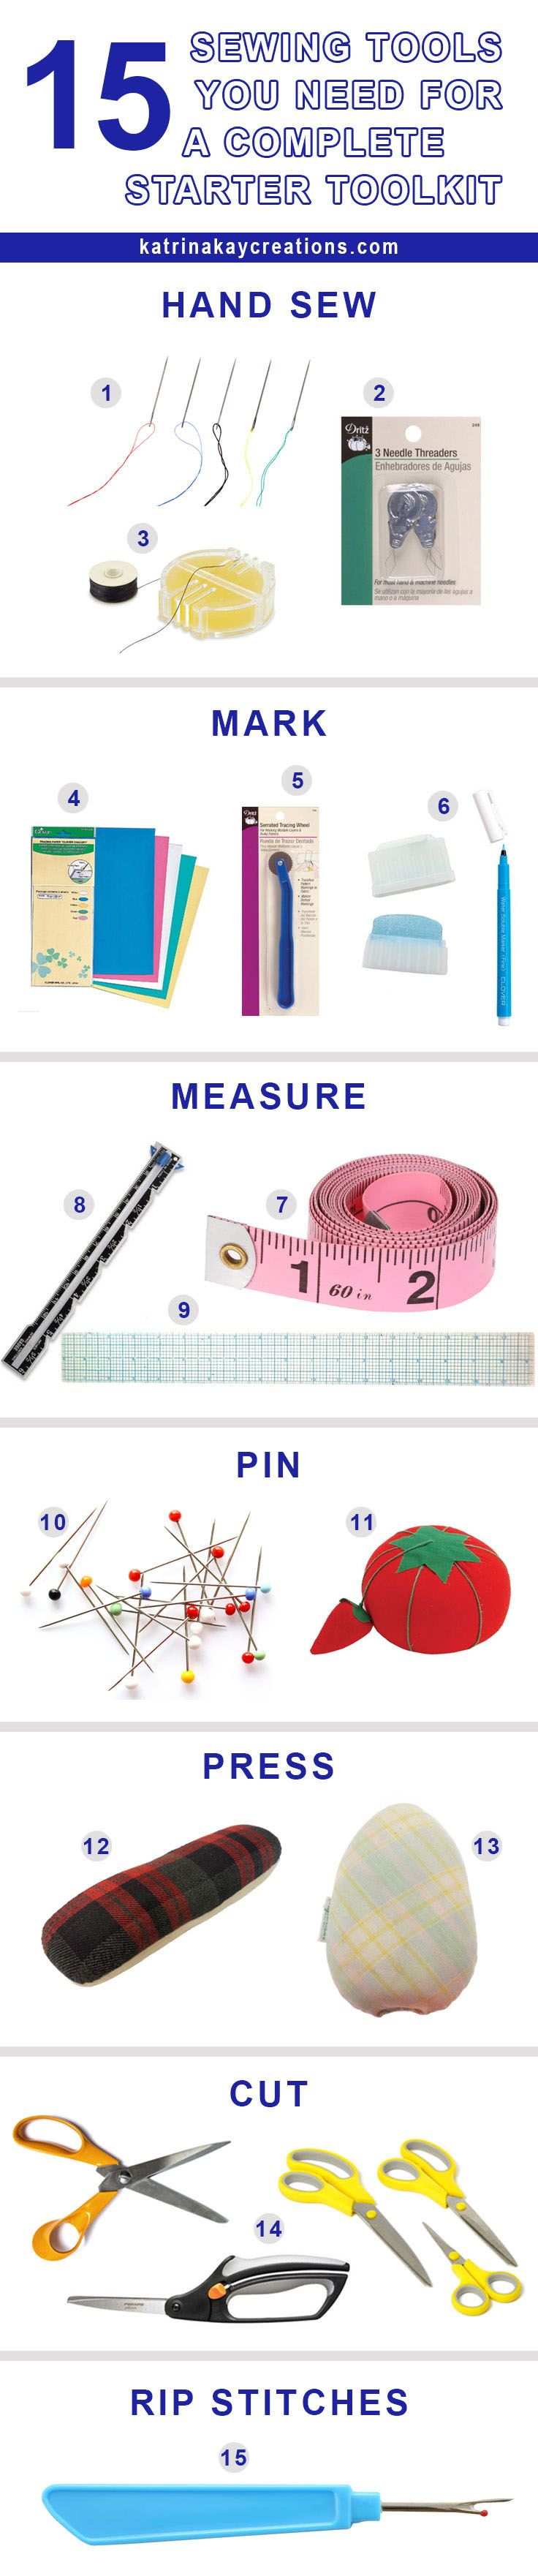 15 Sewing Tools You Need For A Complete Starter Toolkit - Katrina Kay Creations